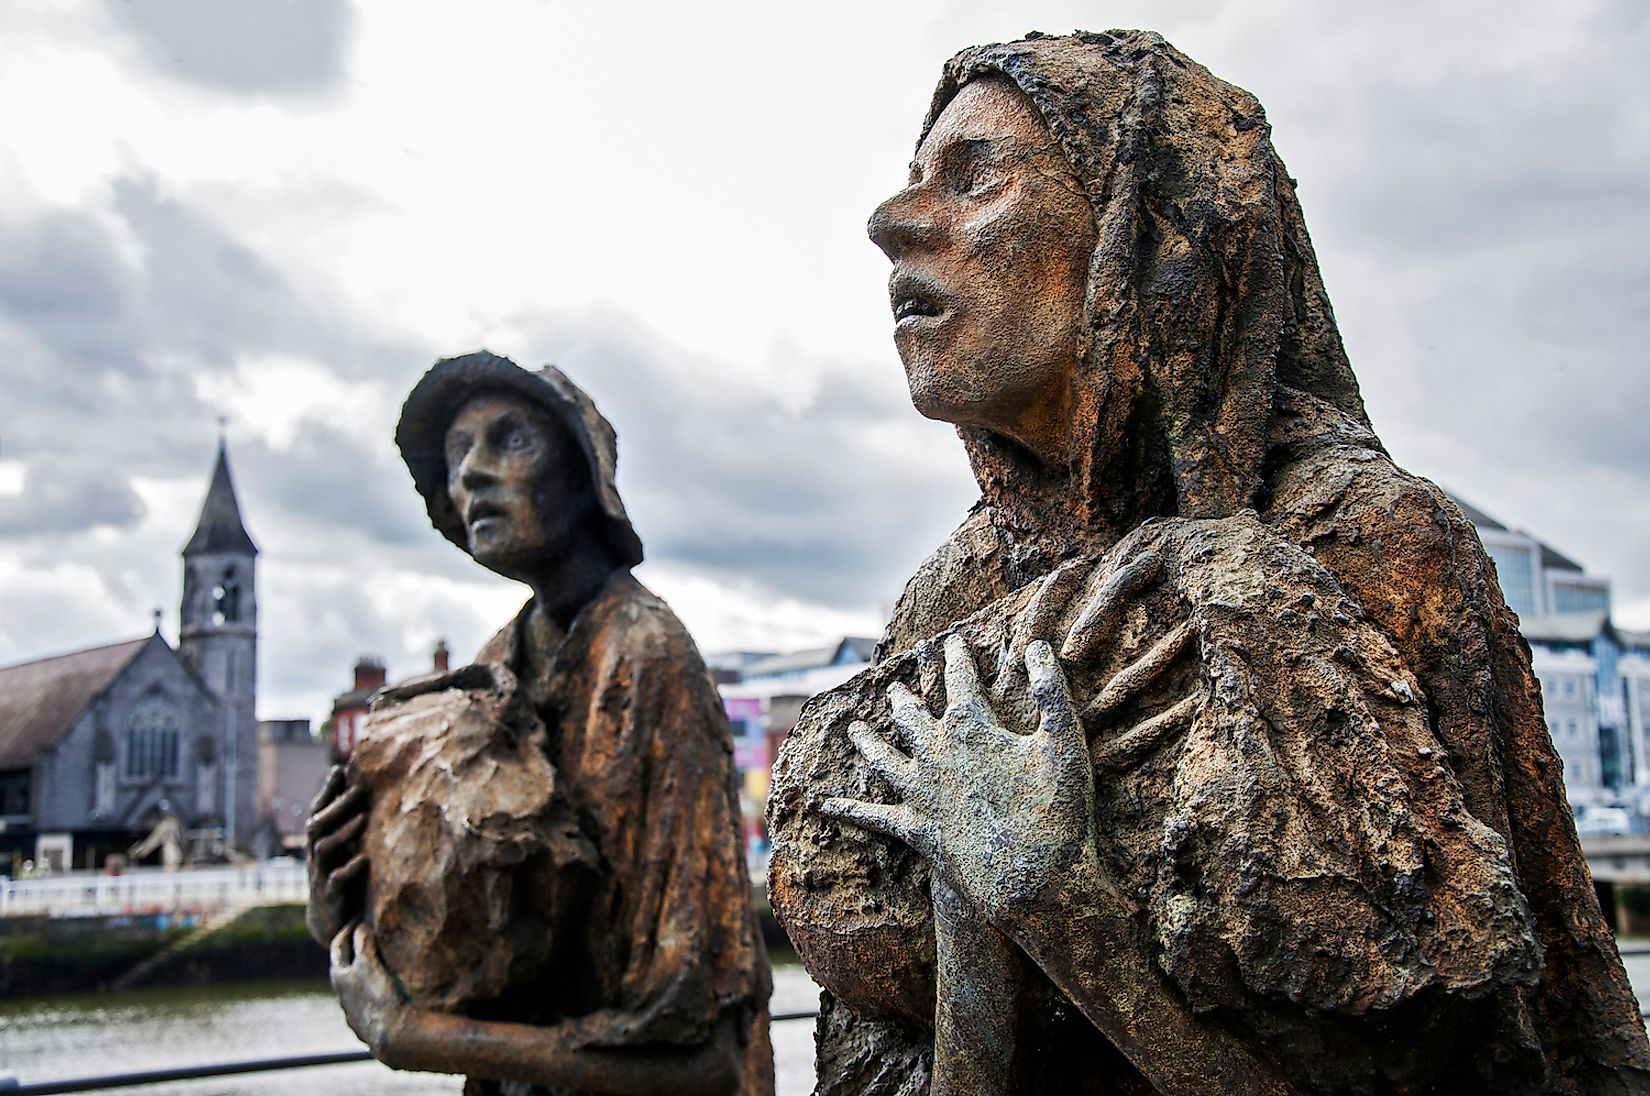 The Famine statues, in Custom House Quay in the Dublin Docklands. Image credit: Yulia Plekhanova/Shutterstock.com